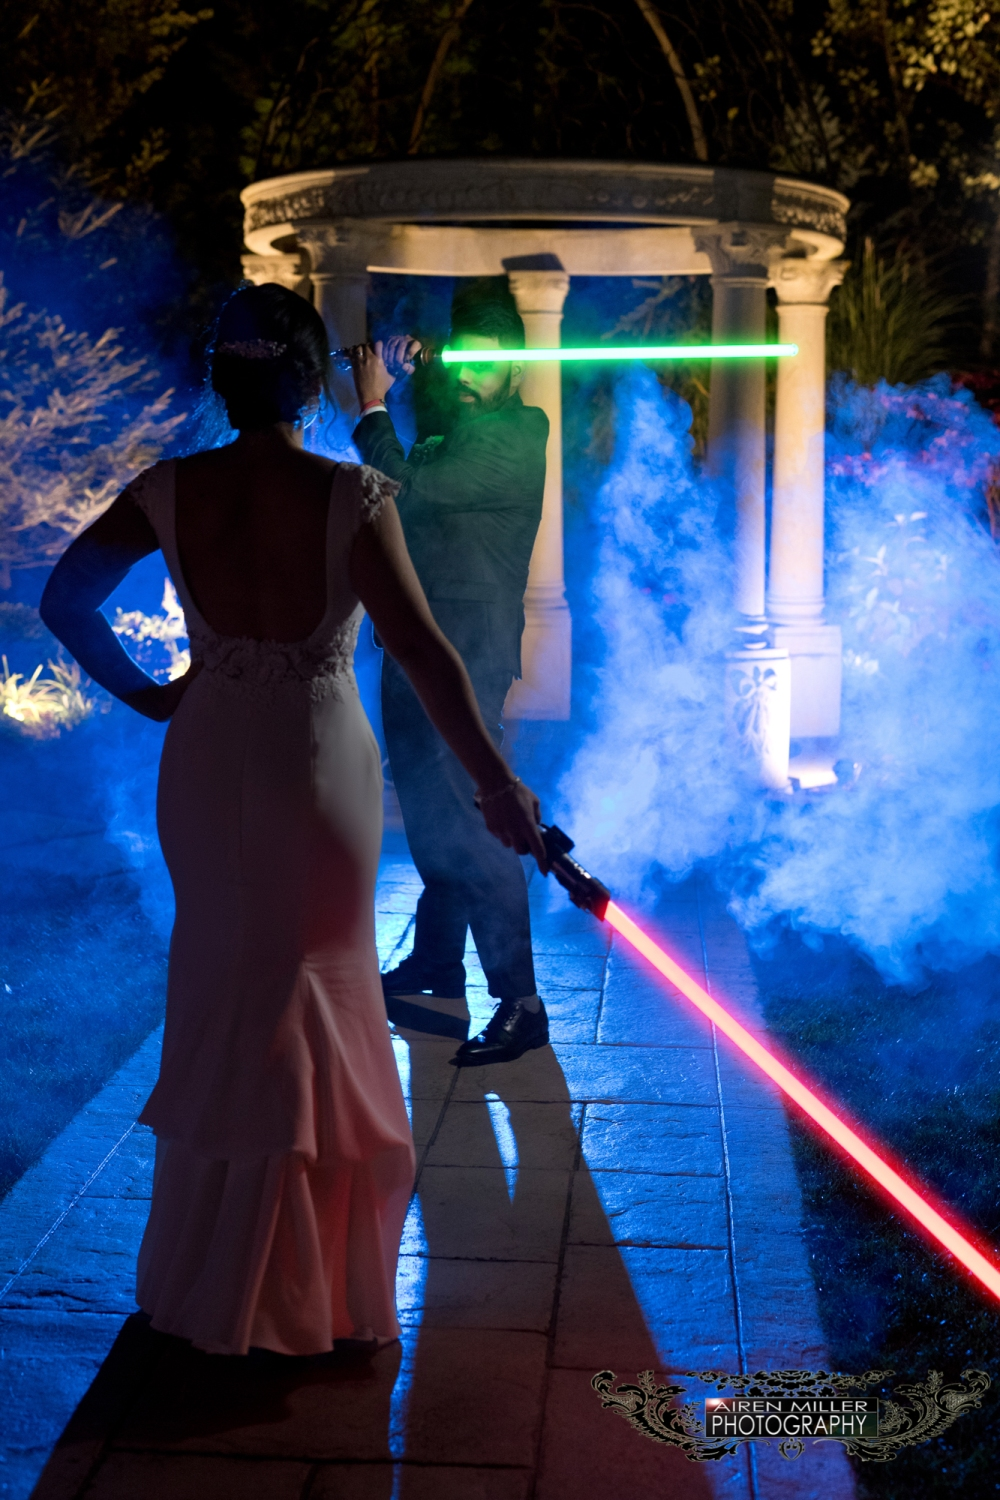 BEst Star Wars wedding ideas